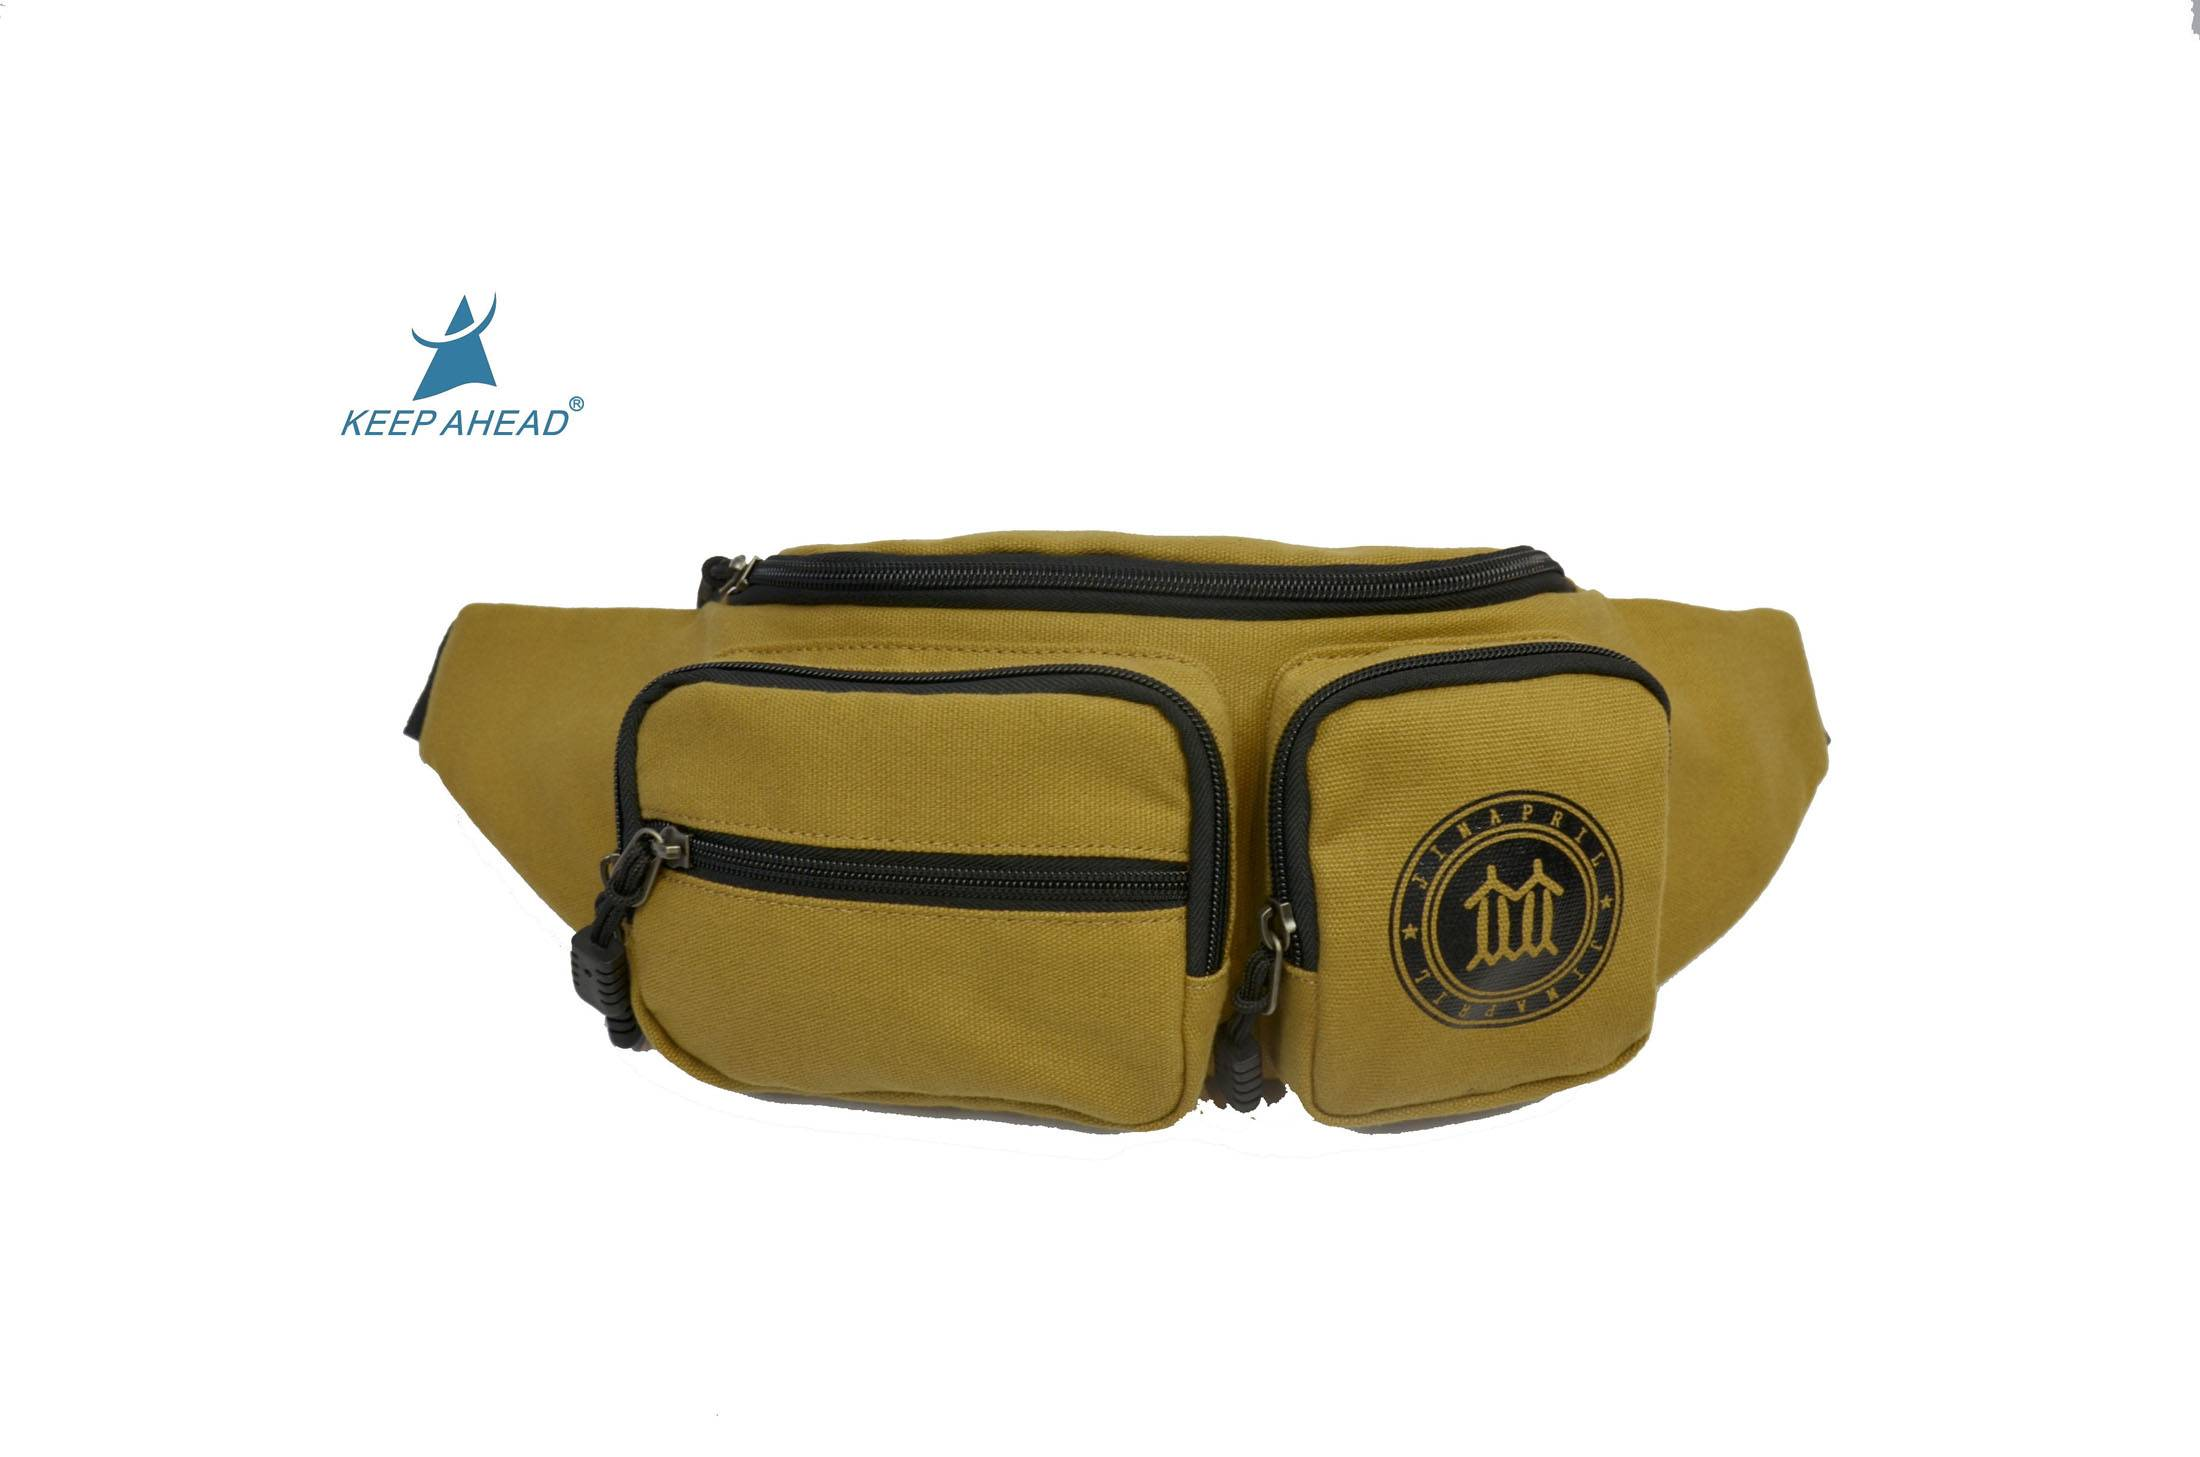 wholesale military canvas waist bag running sport fanny pack bumbag for money